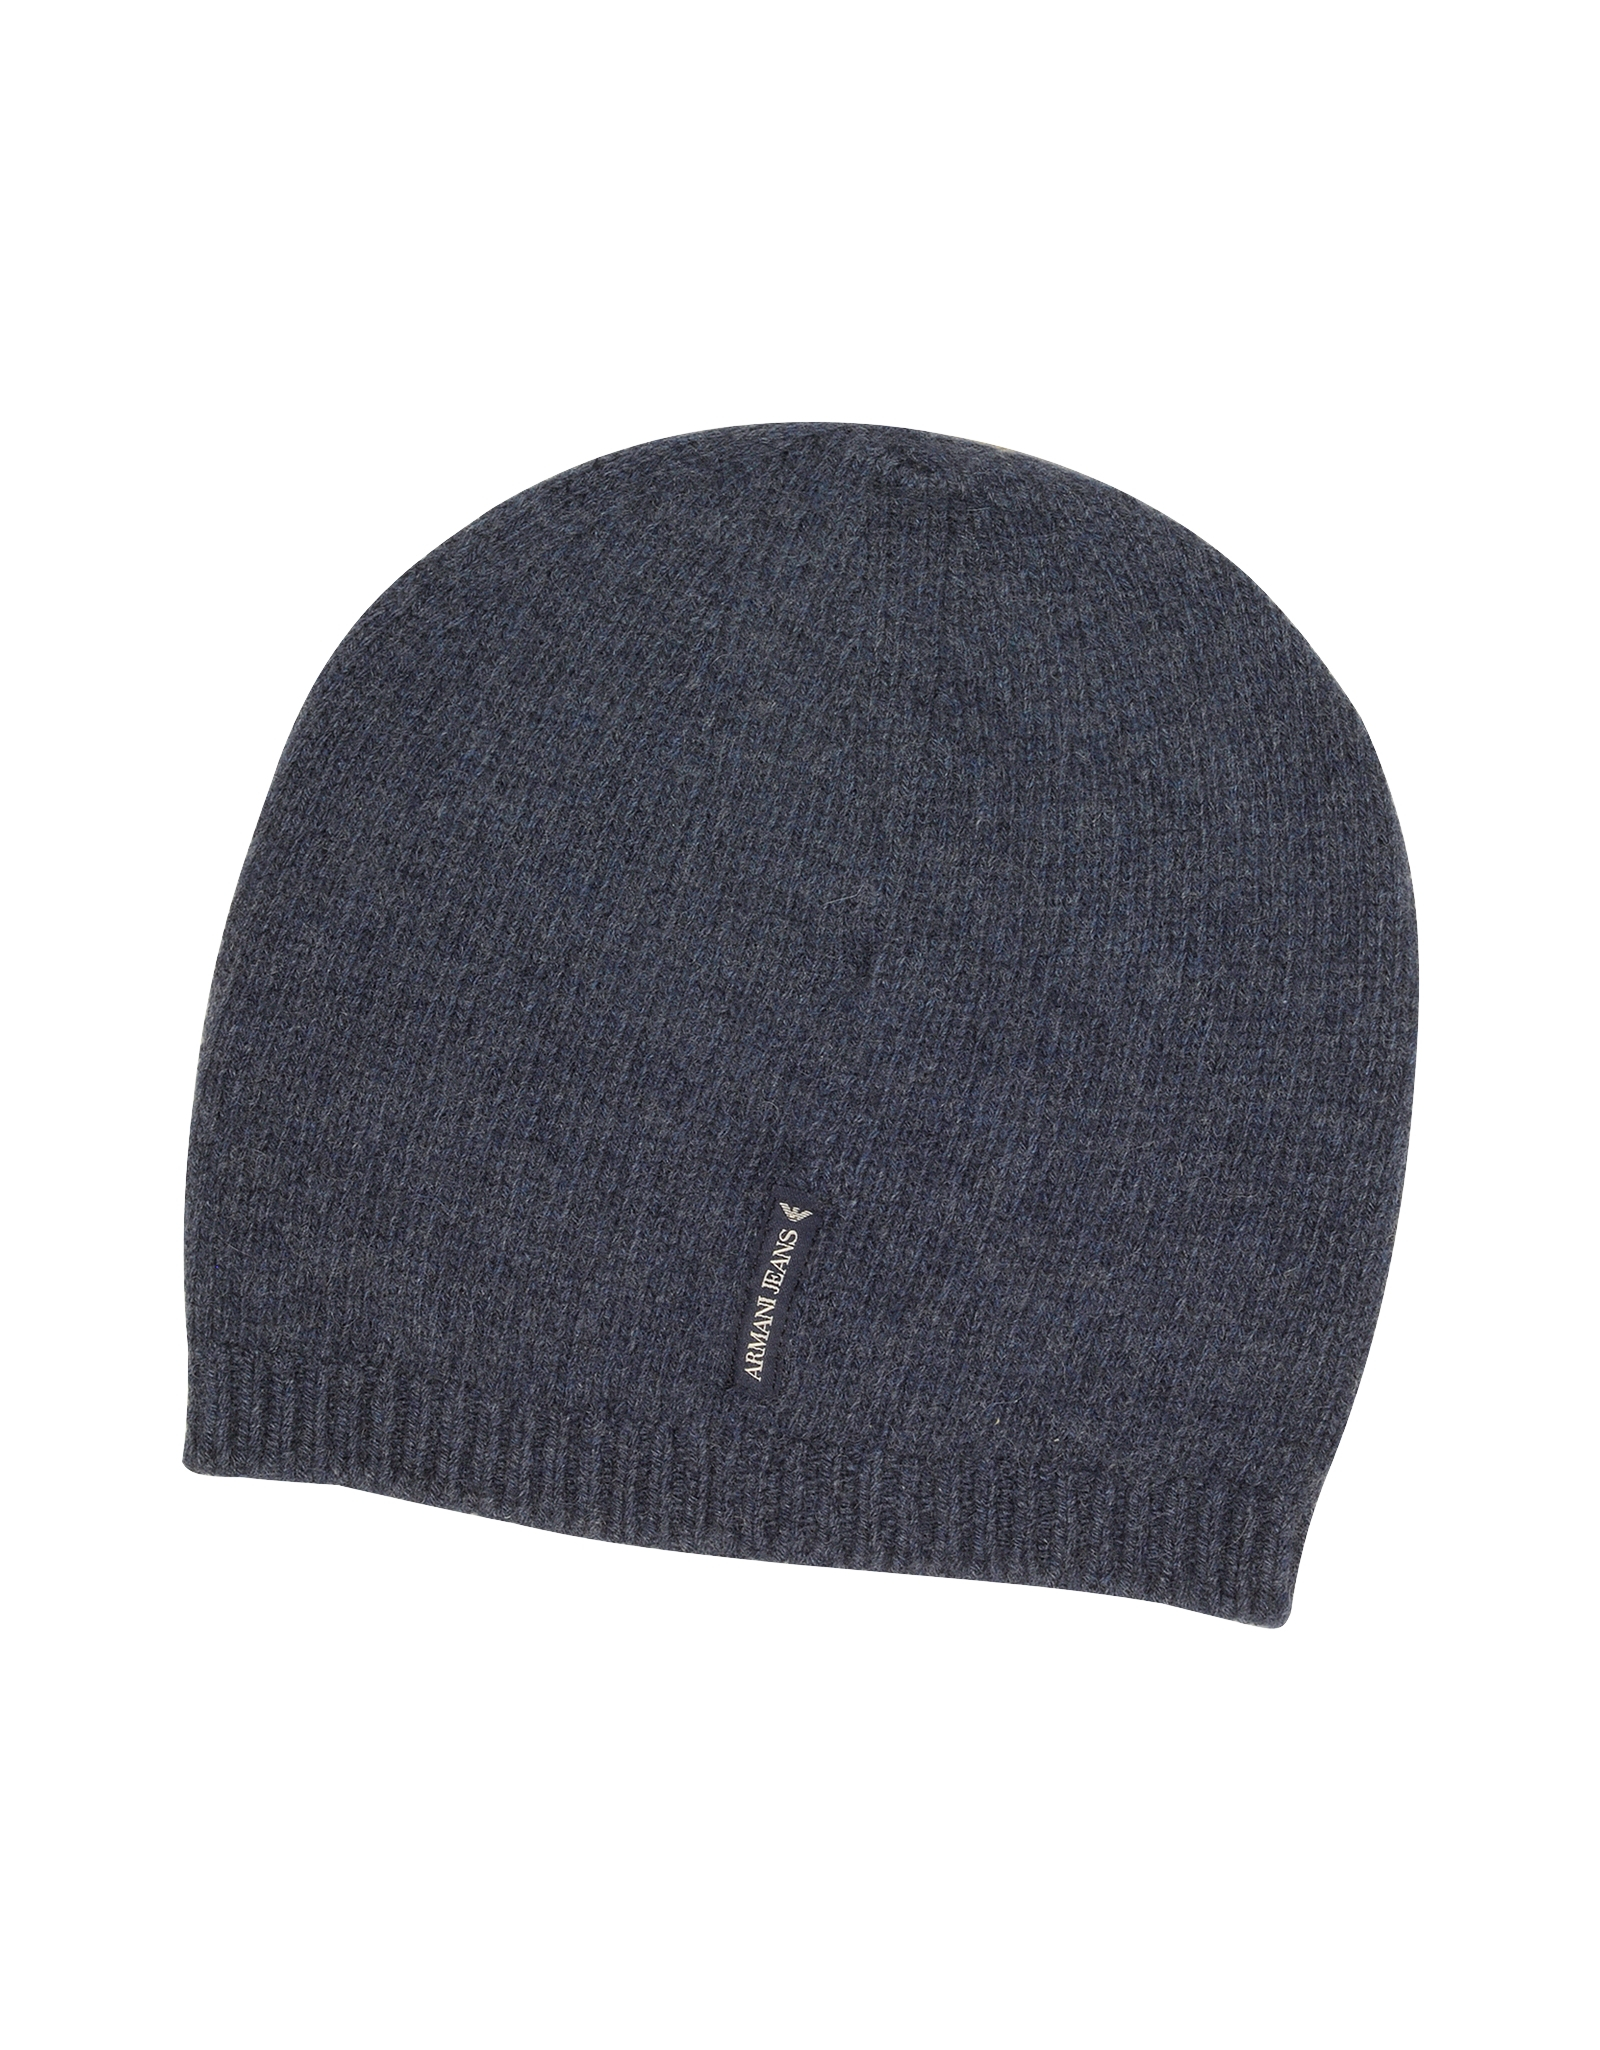 Armani Jeans Solid Pure Cashmere Men s Beanie Hat in Blue for Men - Lyst 74f91be28a12